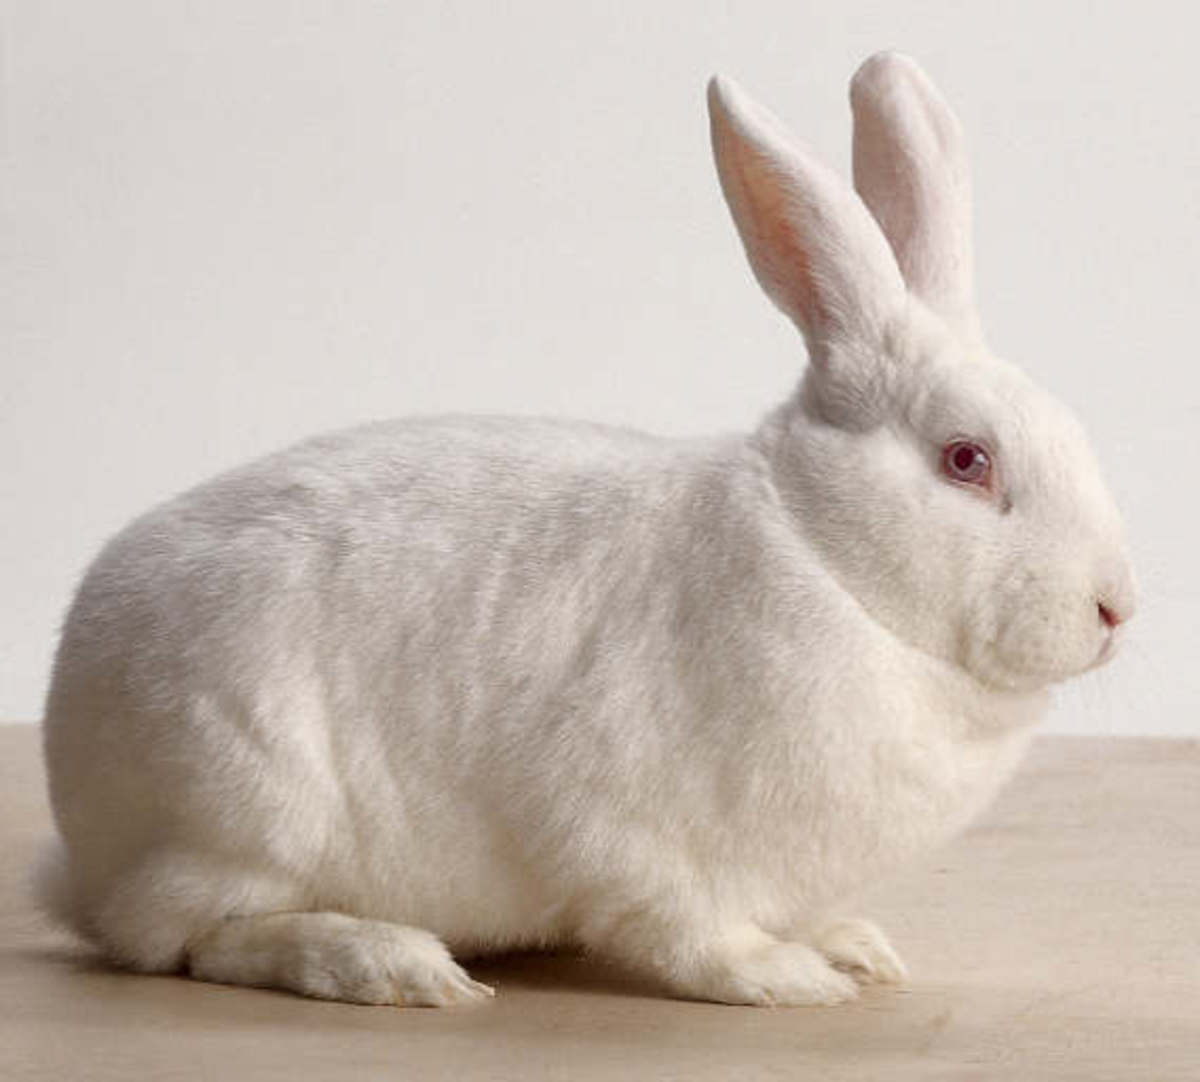 Bunny Breed Guide: New Zealand White Rabbit